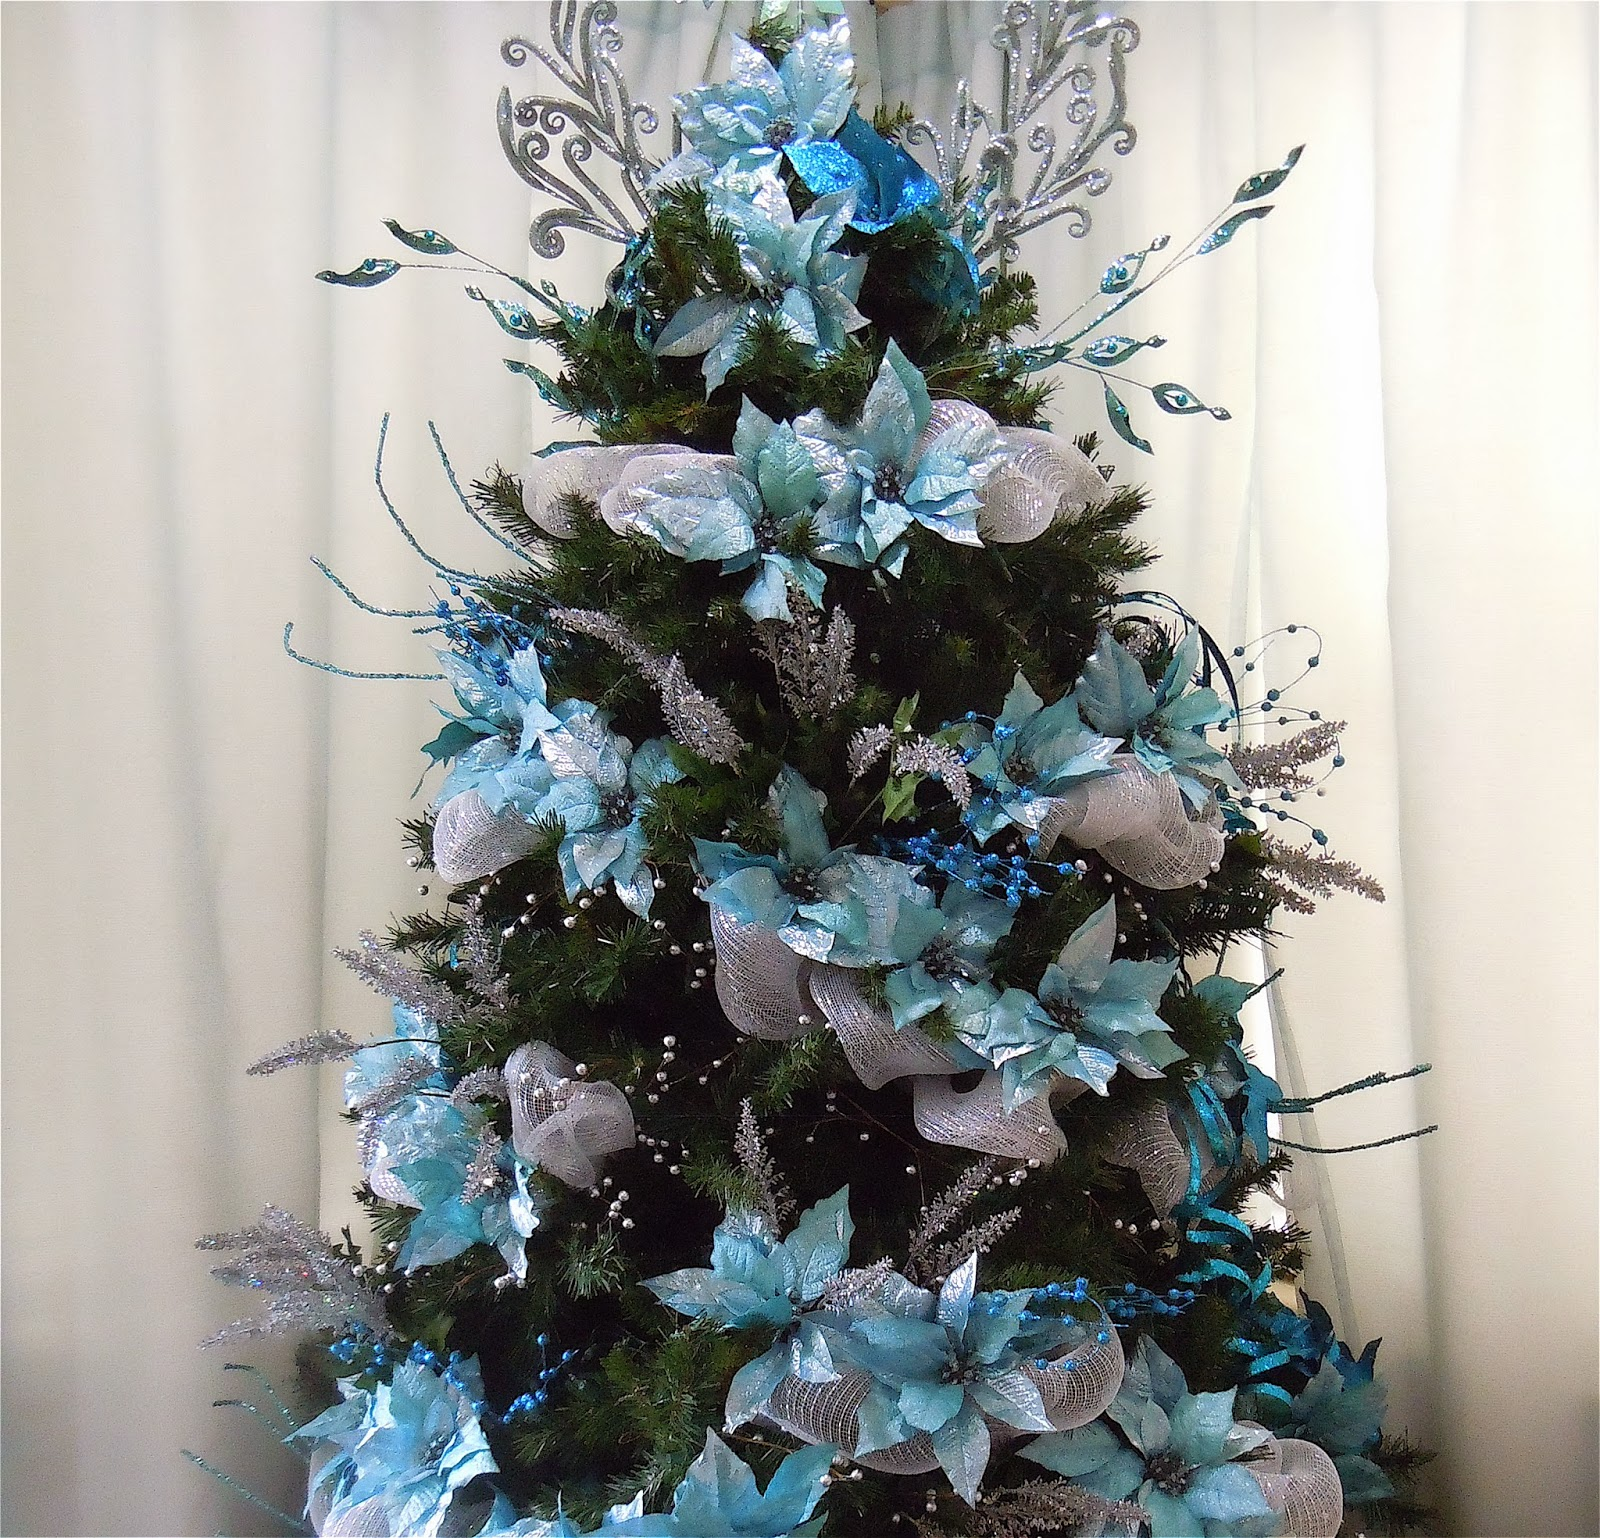 still in the initial stages of decorating just with turquoise poinsettias silver and blue picks no ornaments yet and it looks full already - Blue And Silver Christmas Tree